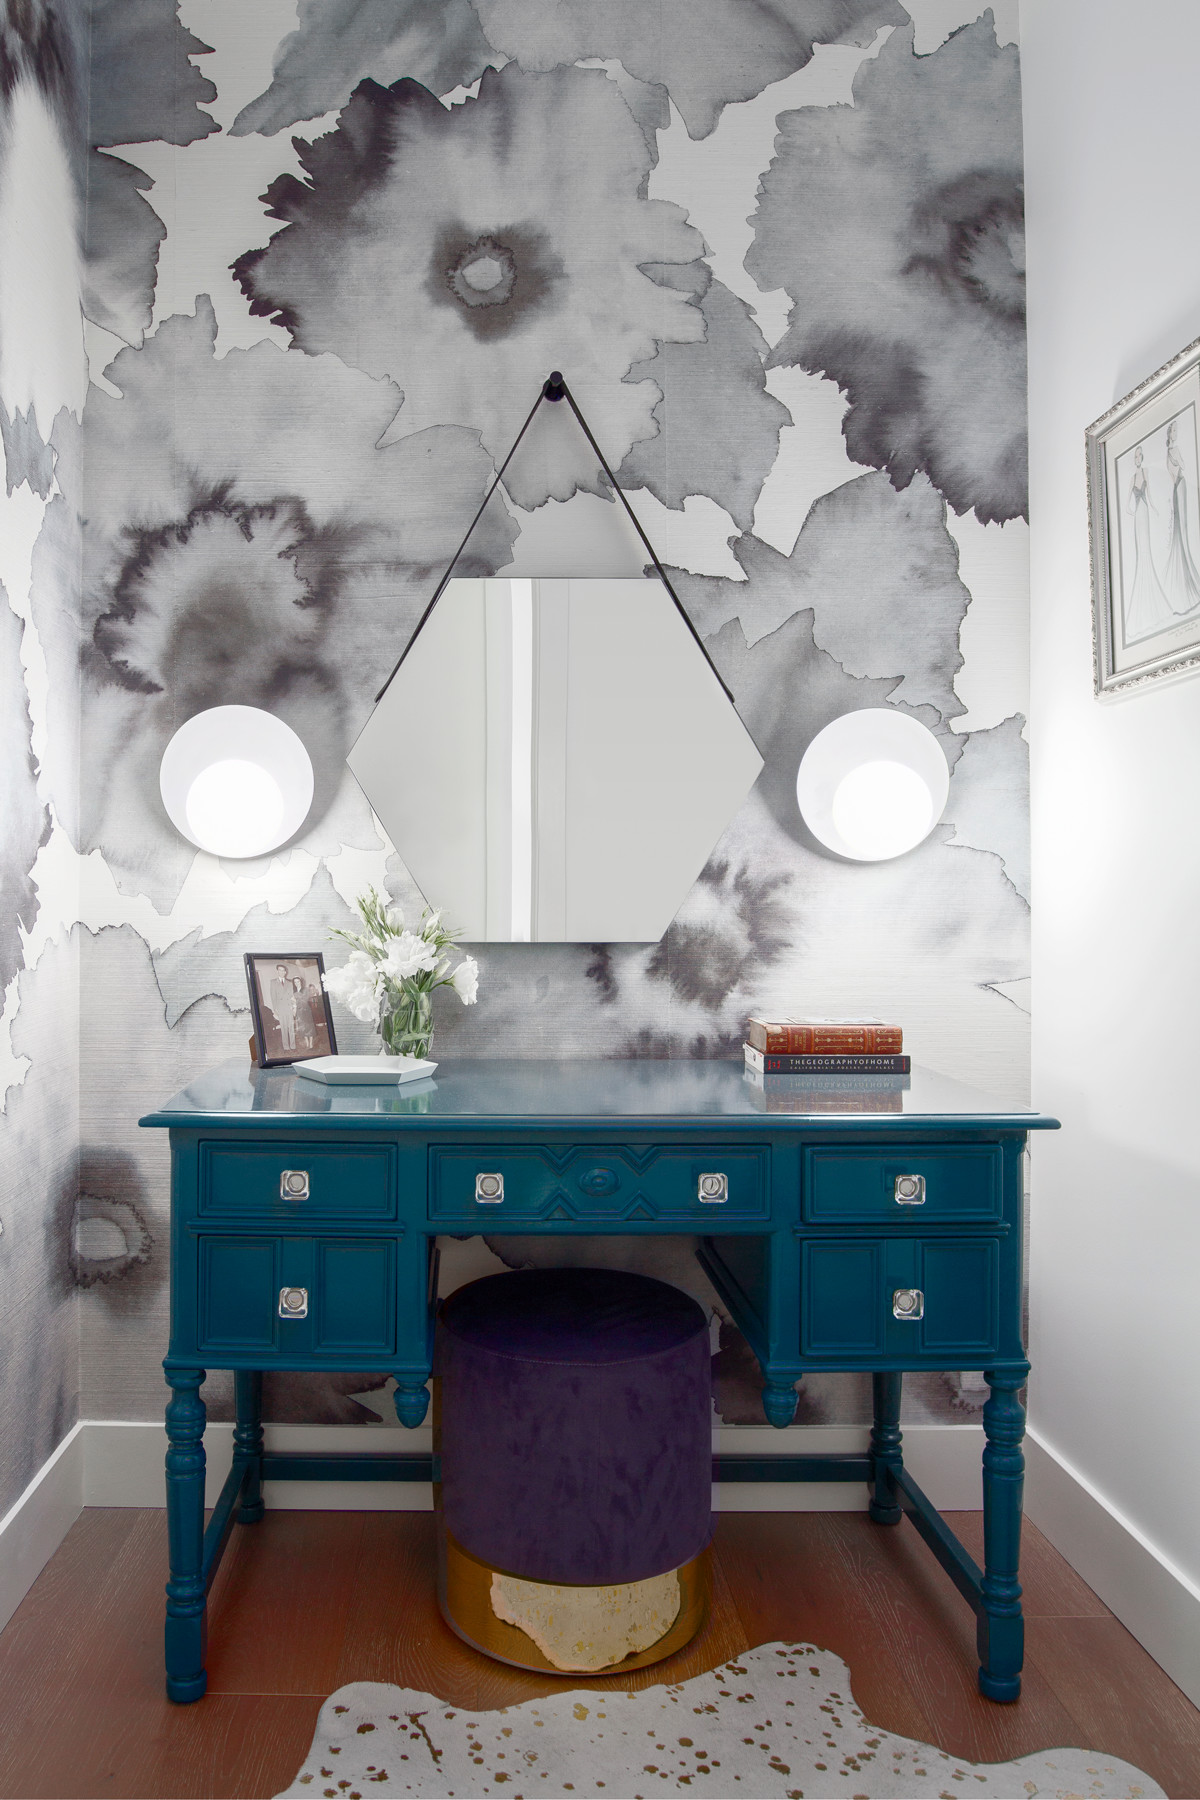 Phillip Jeffrieswallpaper gives a floral pop to the powder room while two coolCedar & Moss sconces add a modern edge. A stool from AllModern provides a glam finish.